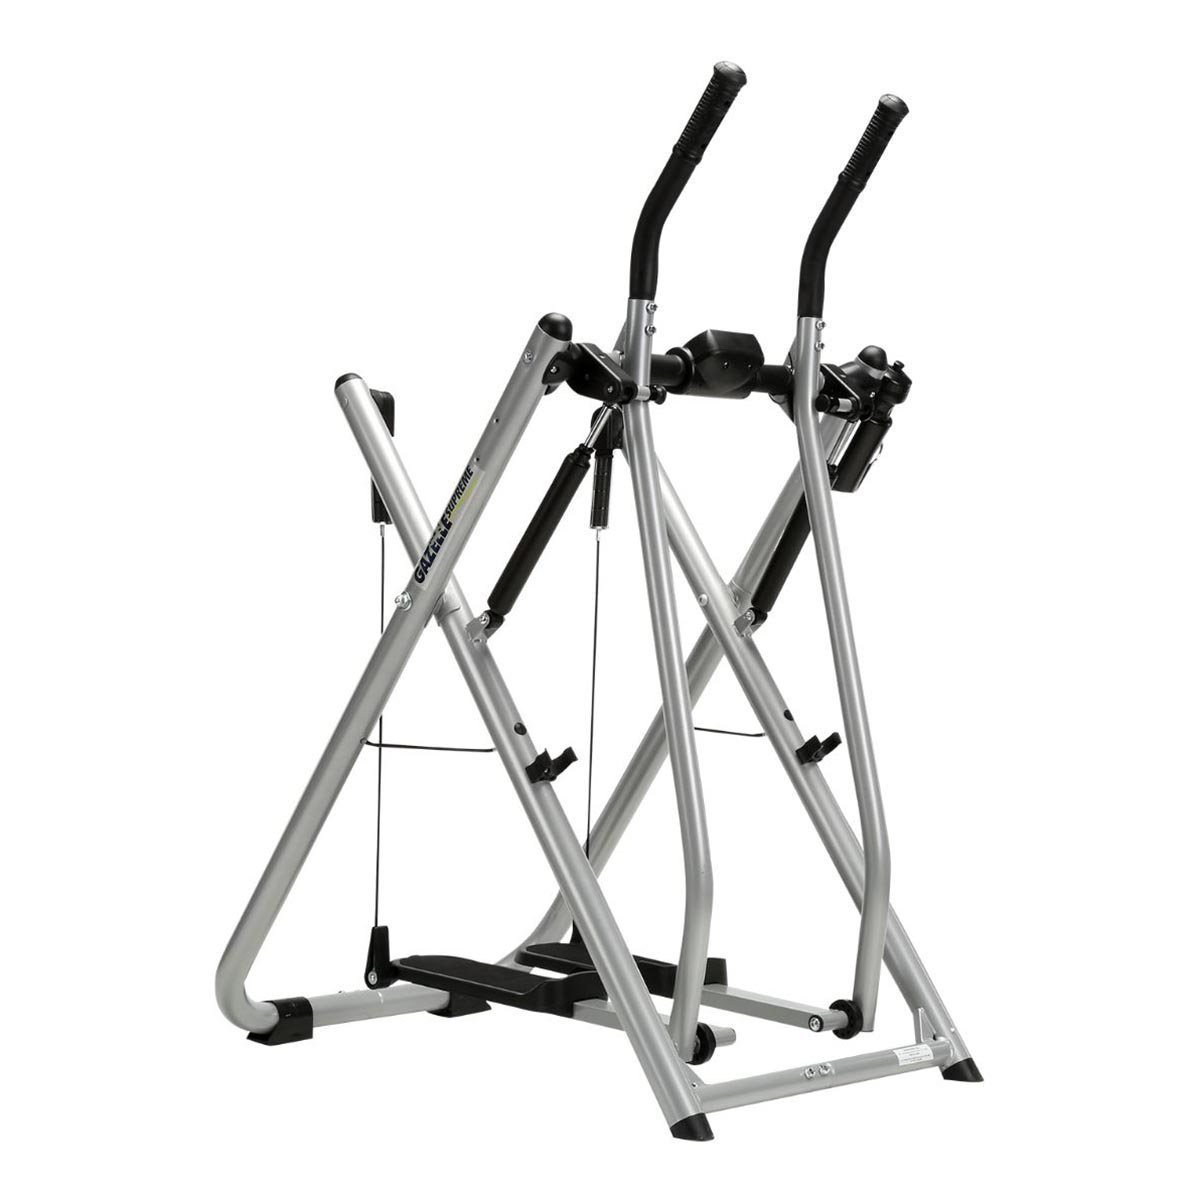 3 Best Gazelle Exercise Machines - Reviews & Buying Guide ...